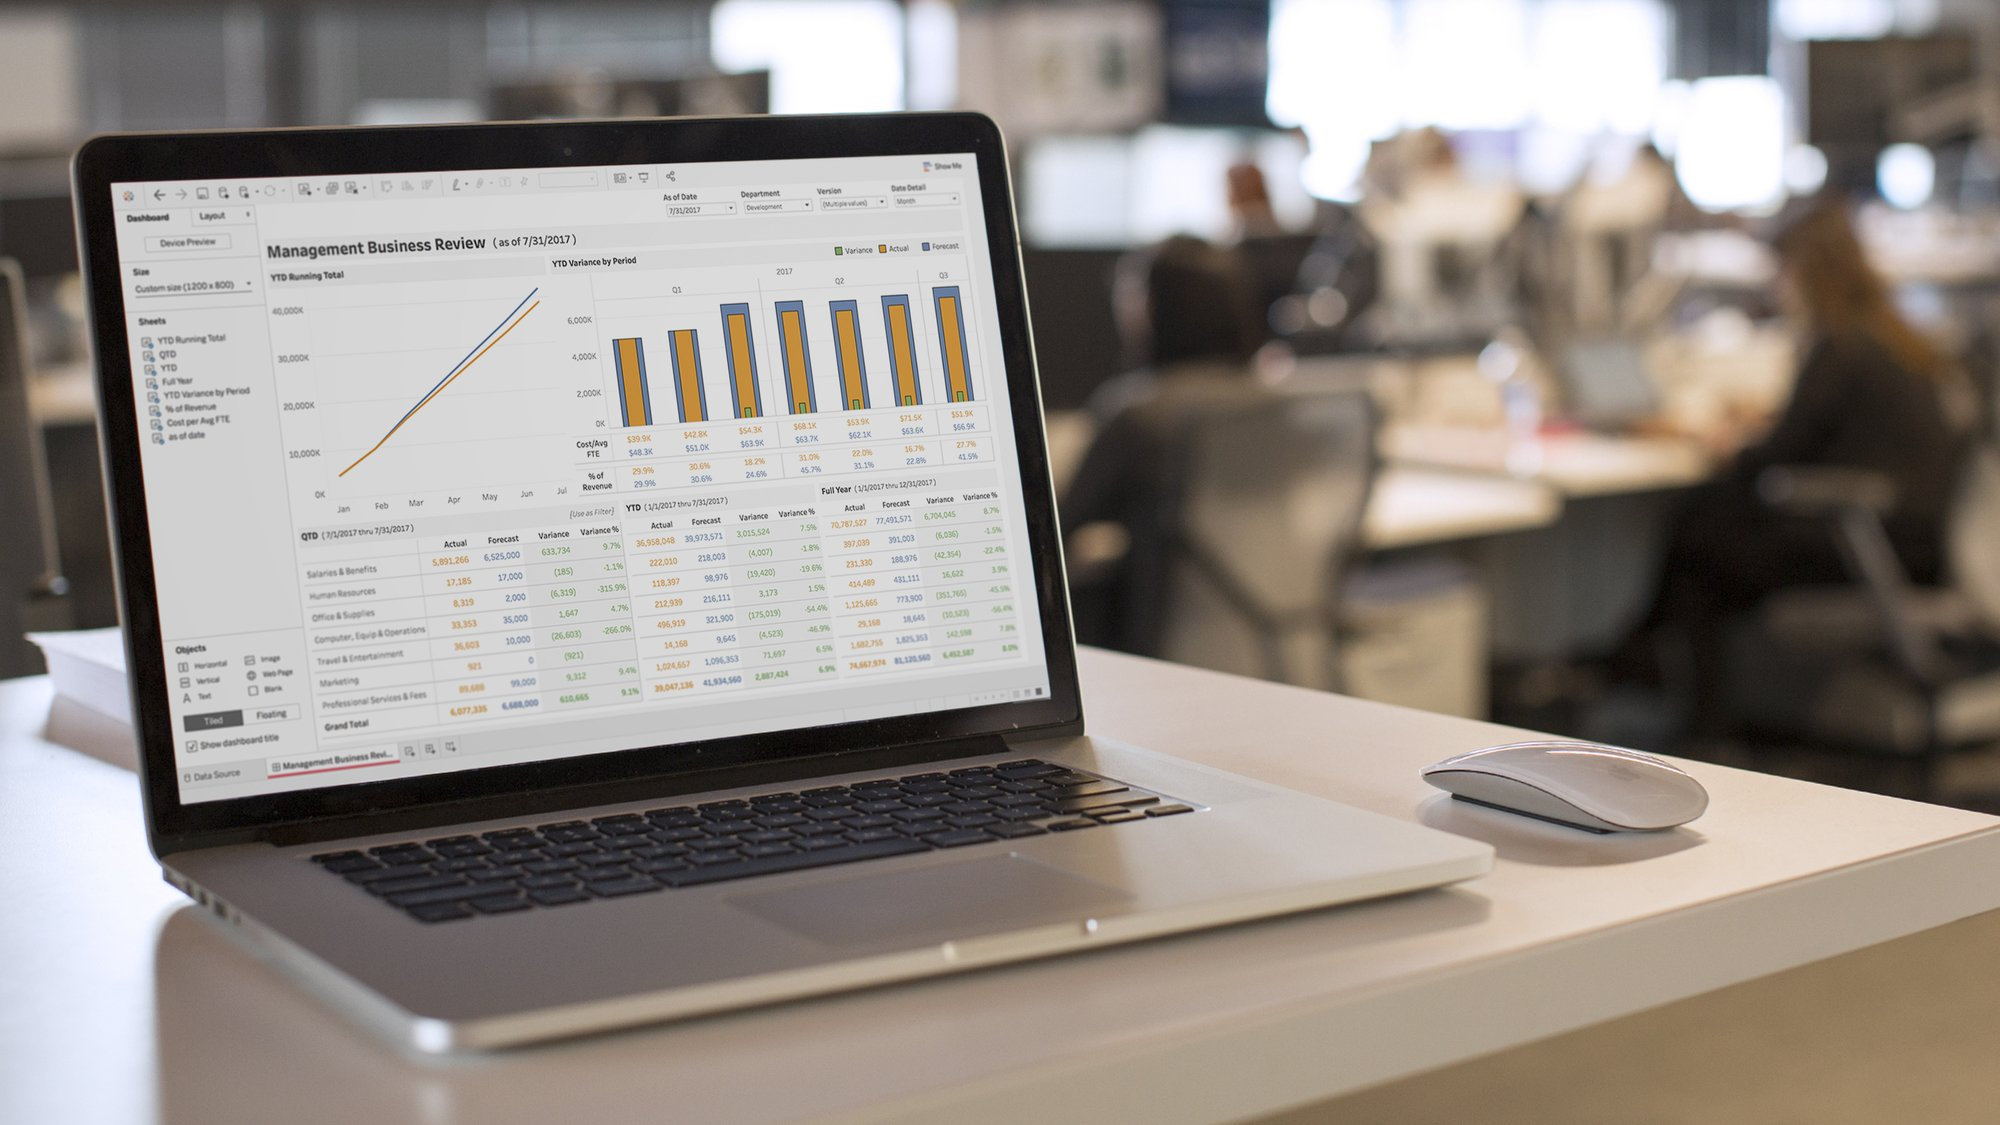 Finance Analytics Financial Data Analysis Made Simple Software Accurate Four Ways Creates Value With Visual